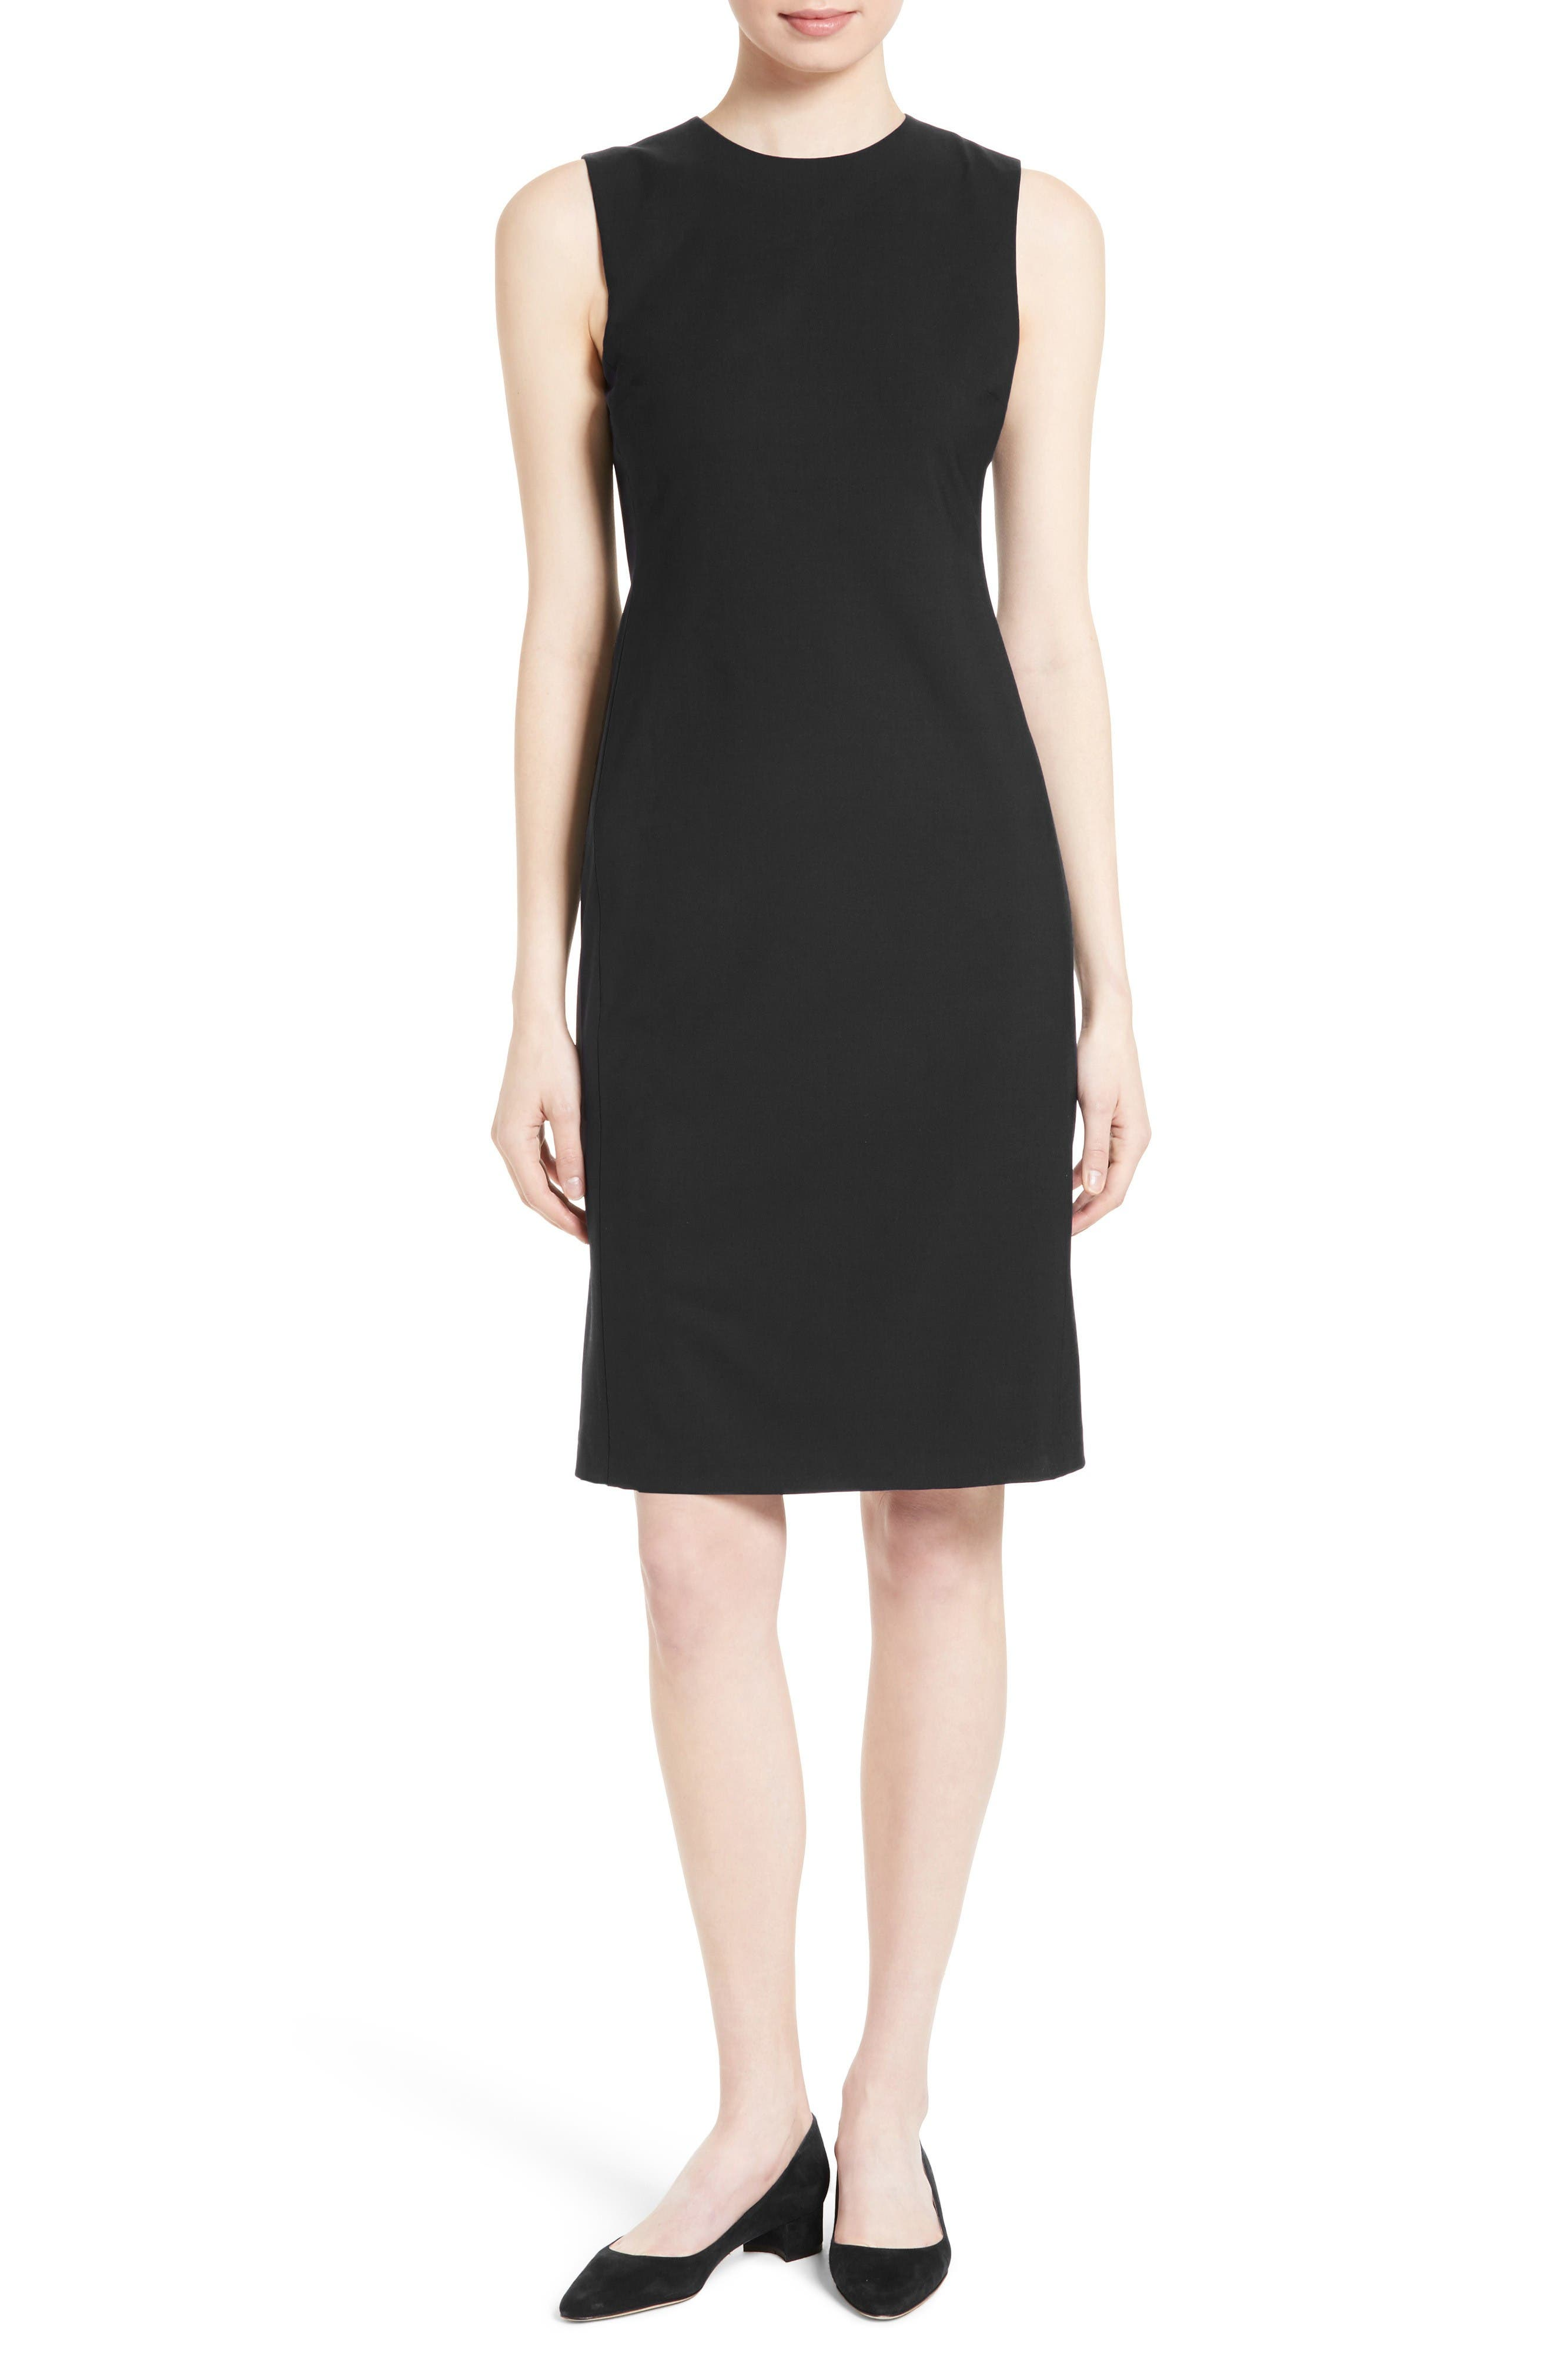 Alternate Image 1 Selected - Theory Eano Good Wool Sheath Dress (Nordstrom Exclusive)